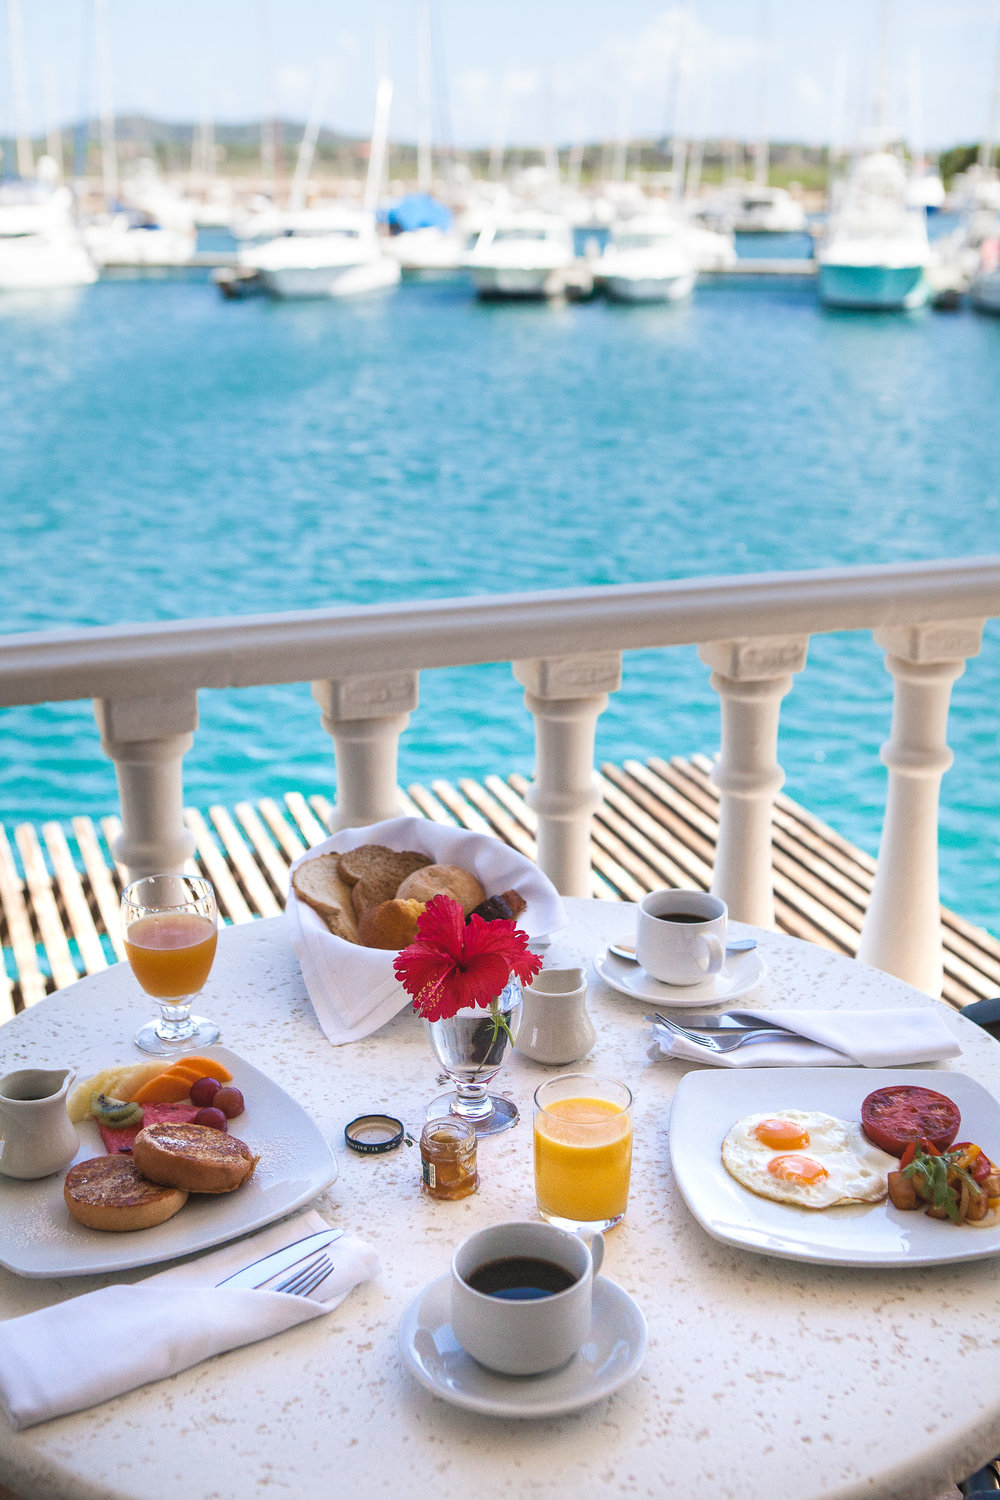 - Possibly my favorite part of staying at Harbour Village was starting each day on my balcony enjoying a slow breakfast overlooking the boats and yachts in the harbor. With average temperatures around 82°F / 28°C year round, even with a slight breeze, it was always comfortable being outside.